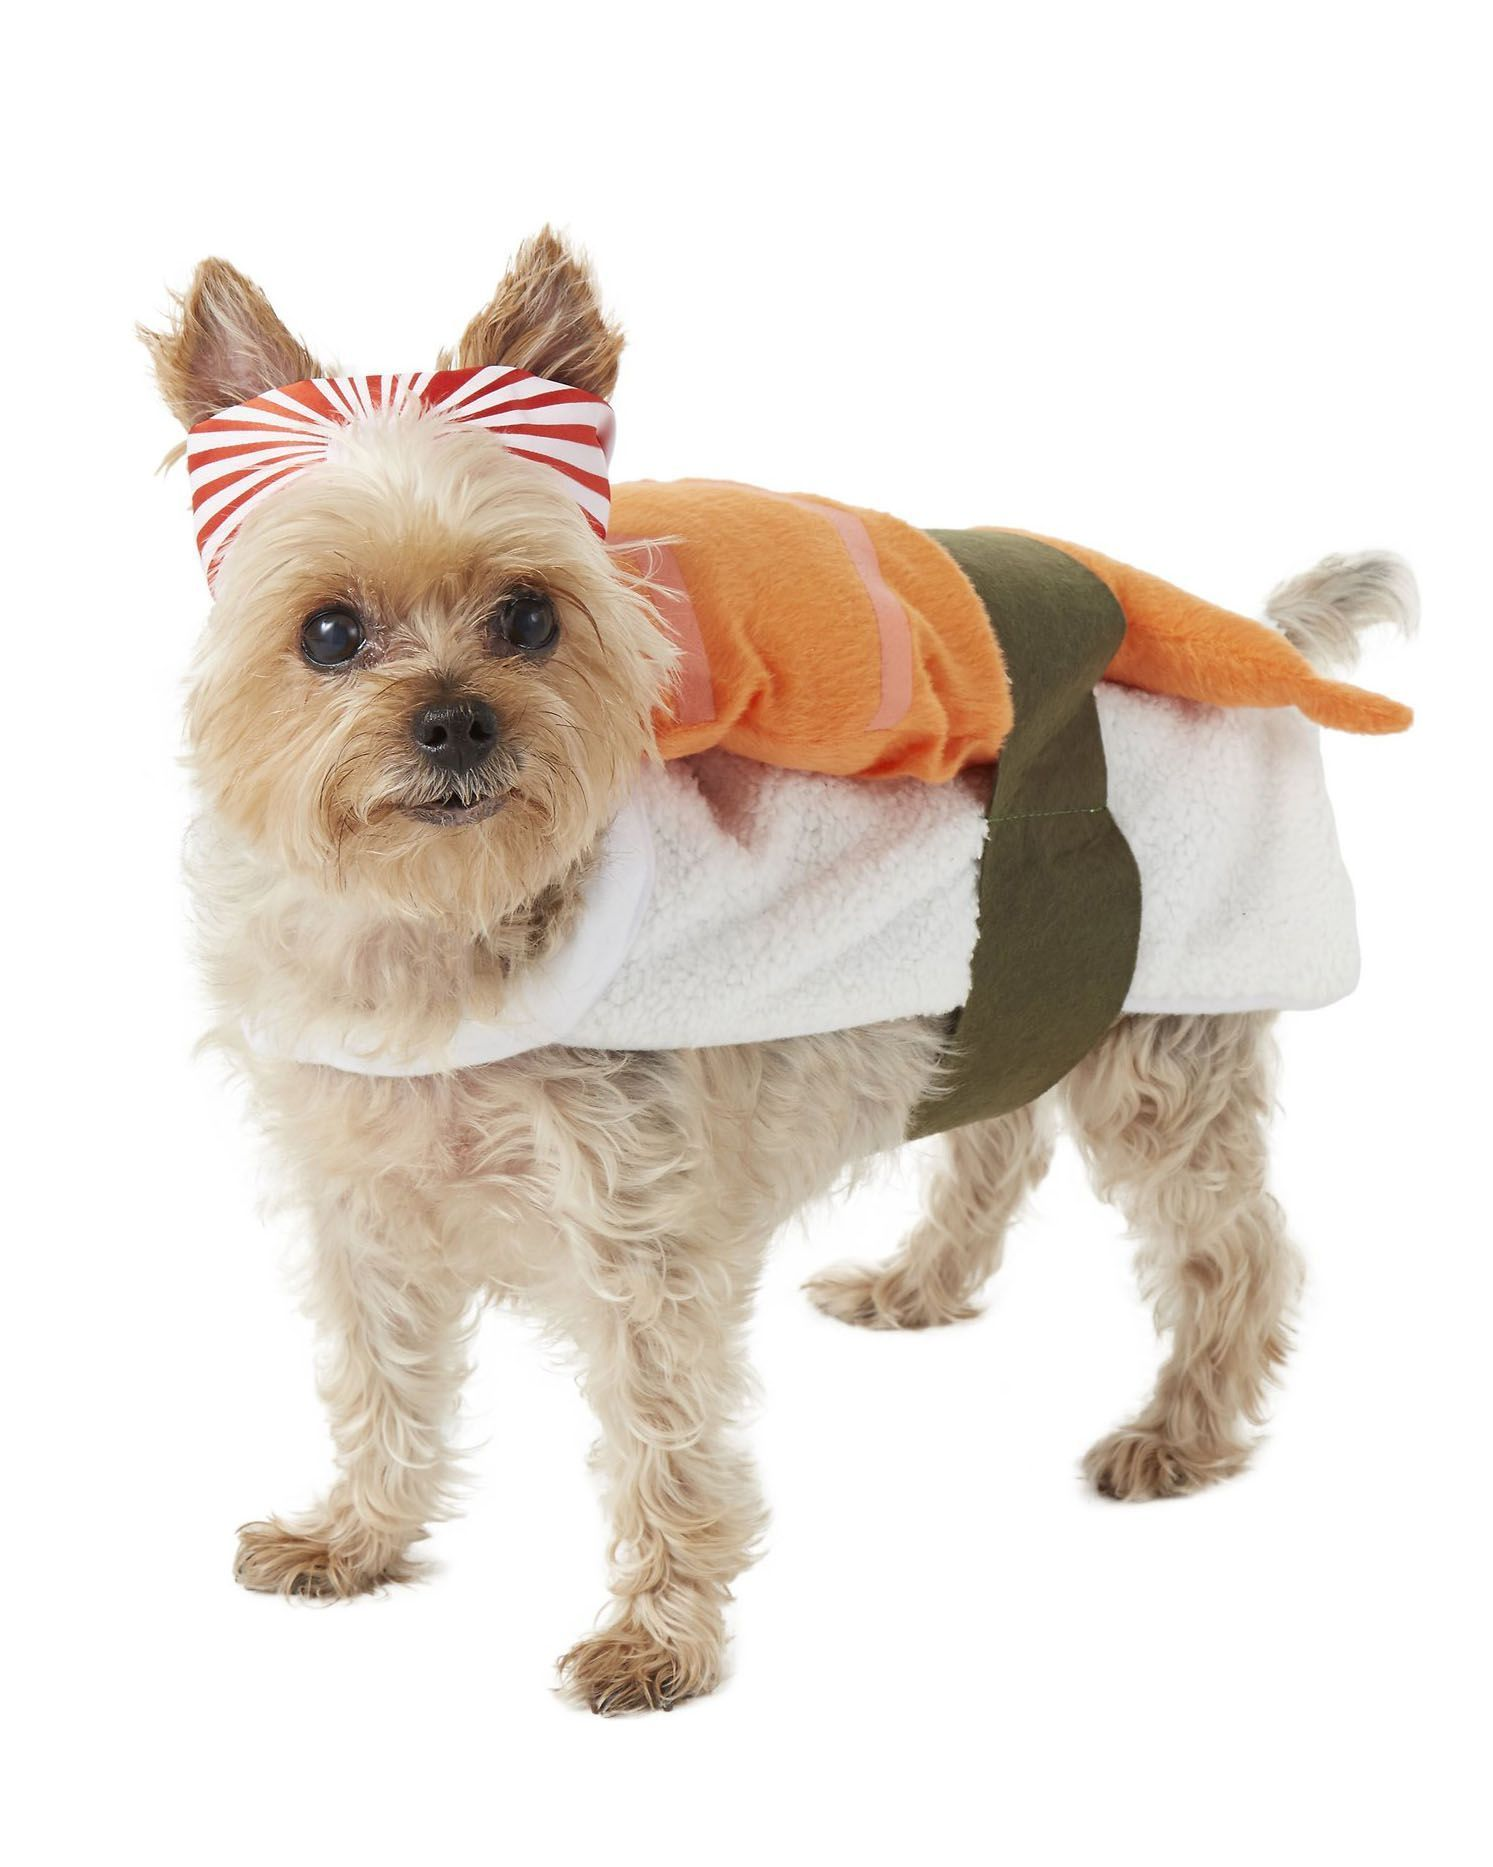 S-M-L dog Halloween costume for pups halloween pet clothing holiday dog gear